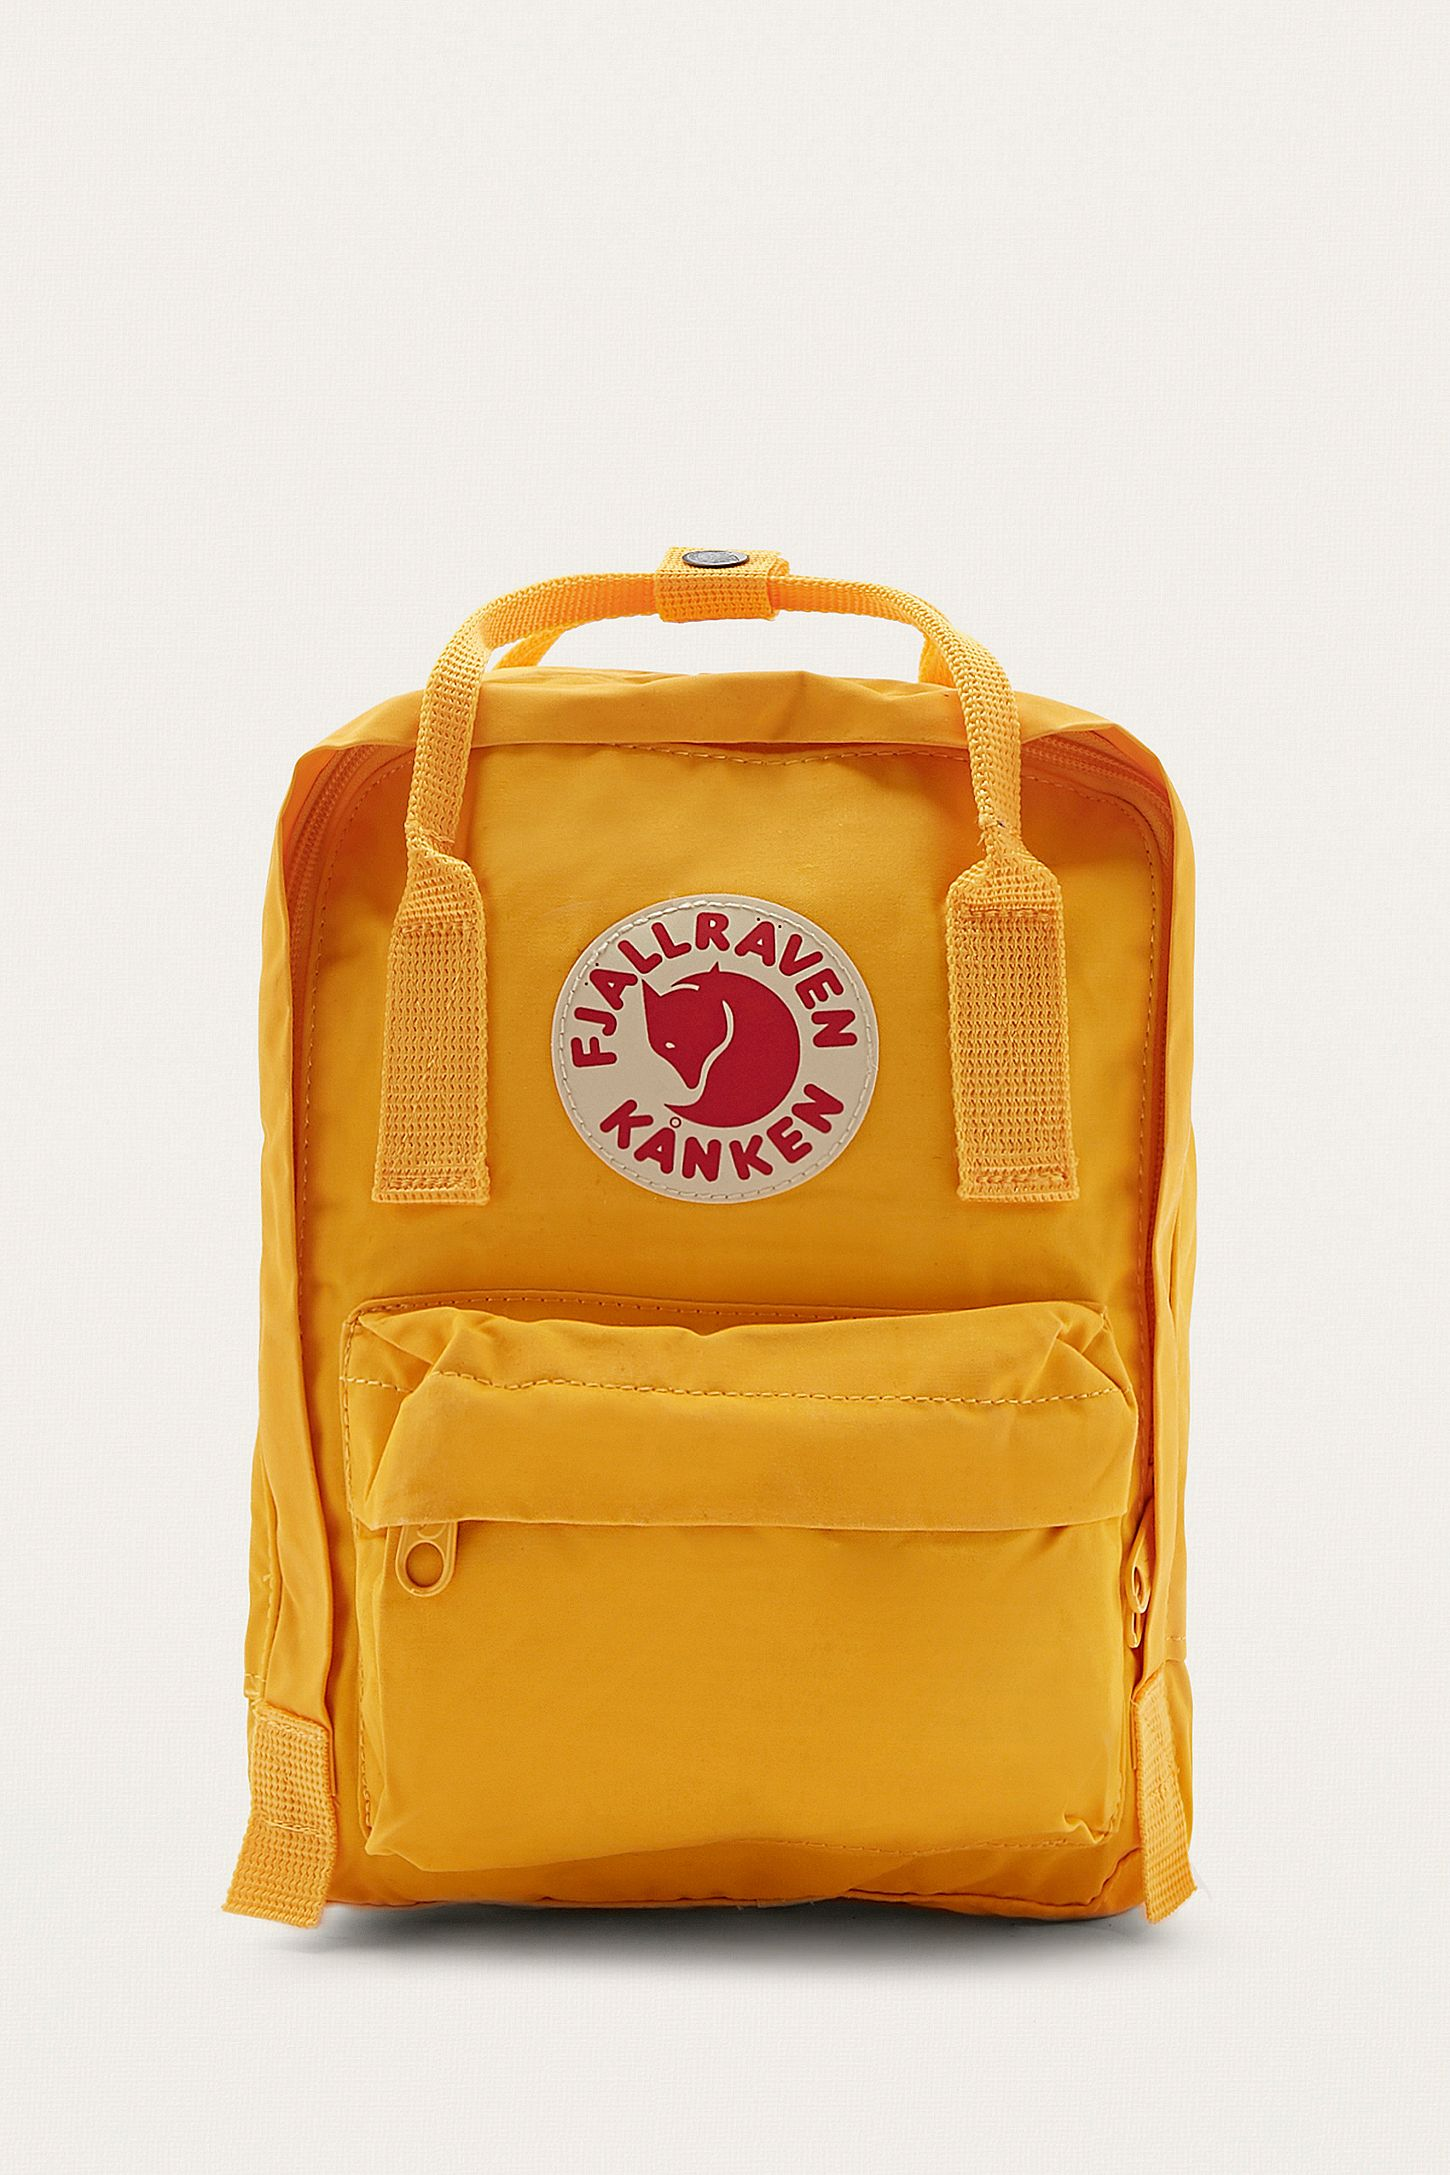 f4c82512f3 Fjallraven Kanken Warm Yellow Mini Backpack. Click on image to zoom. Hover  to zoom. Double Tap to Zoom